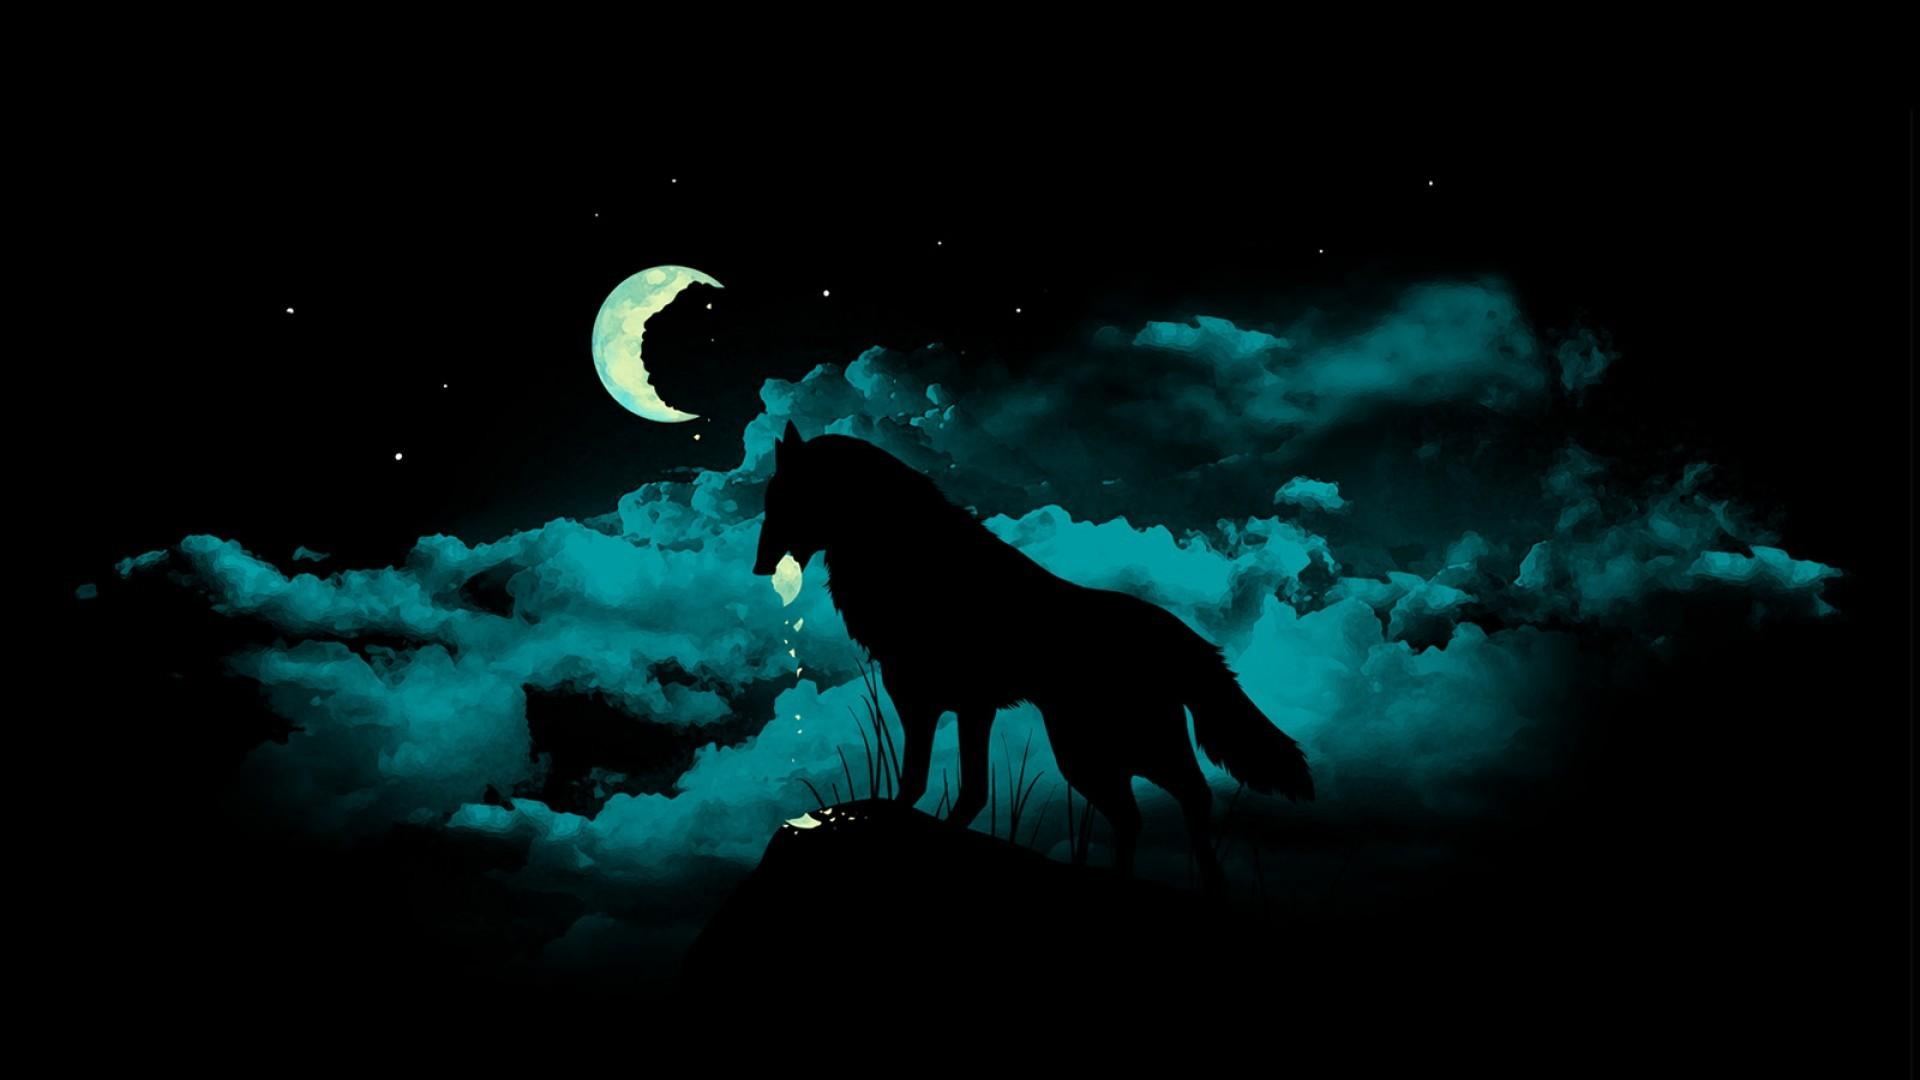 Night Wolf Wallpaper